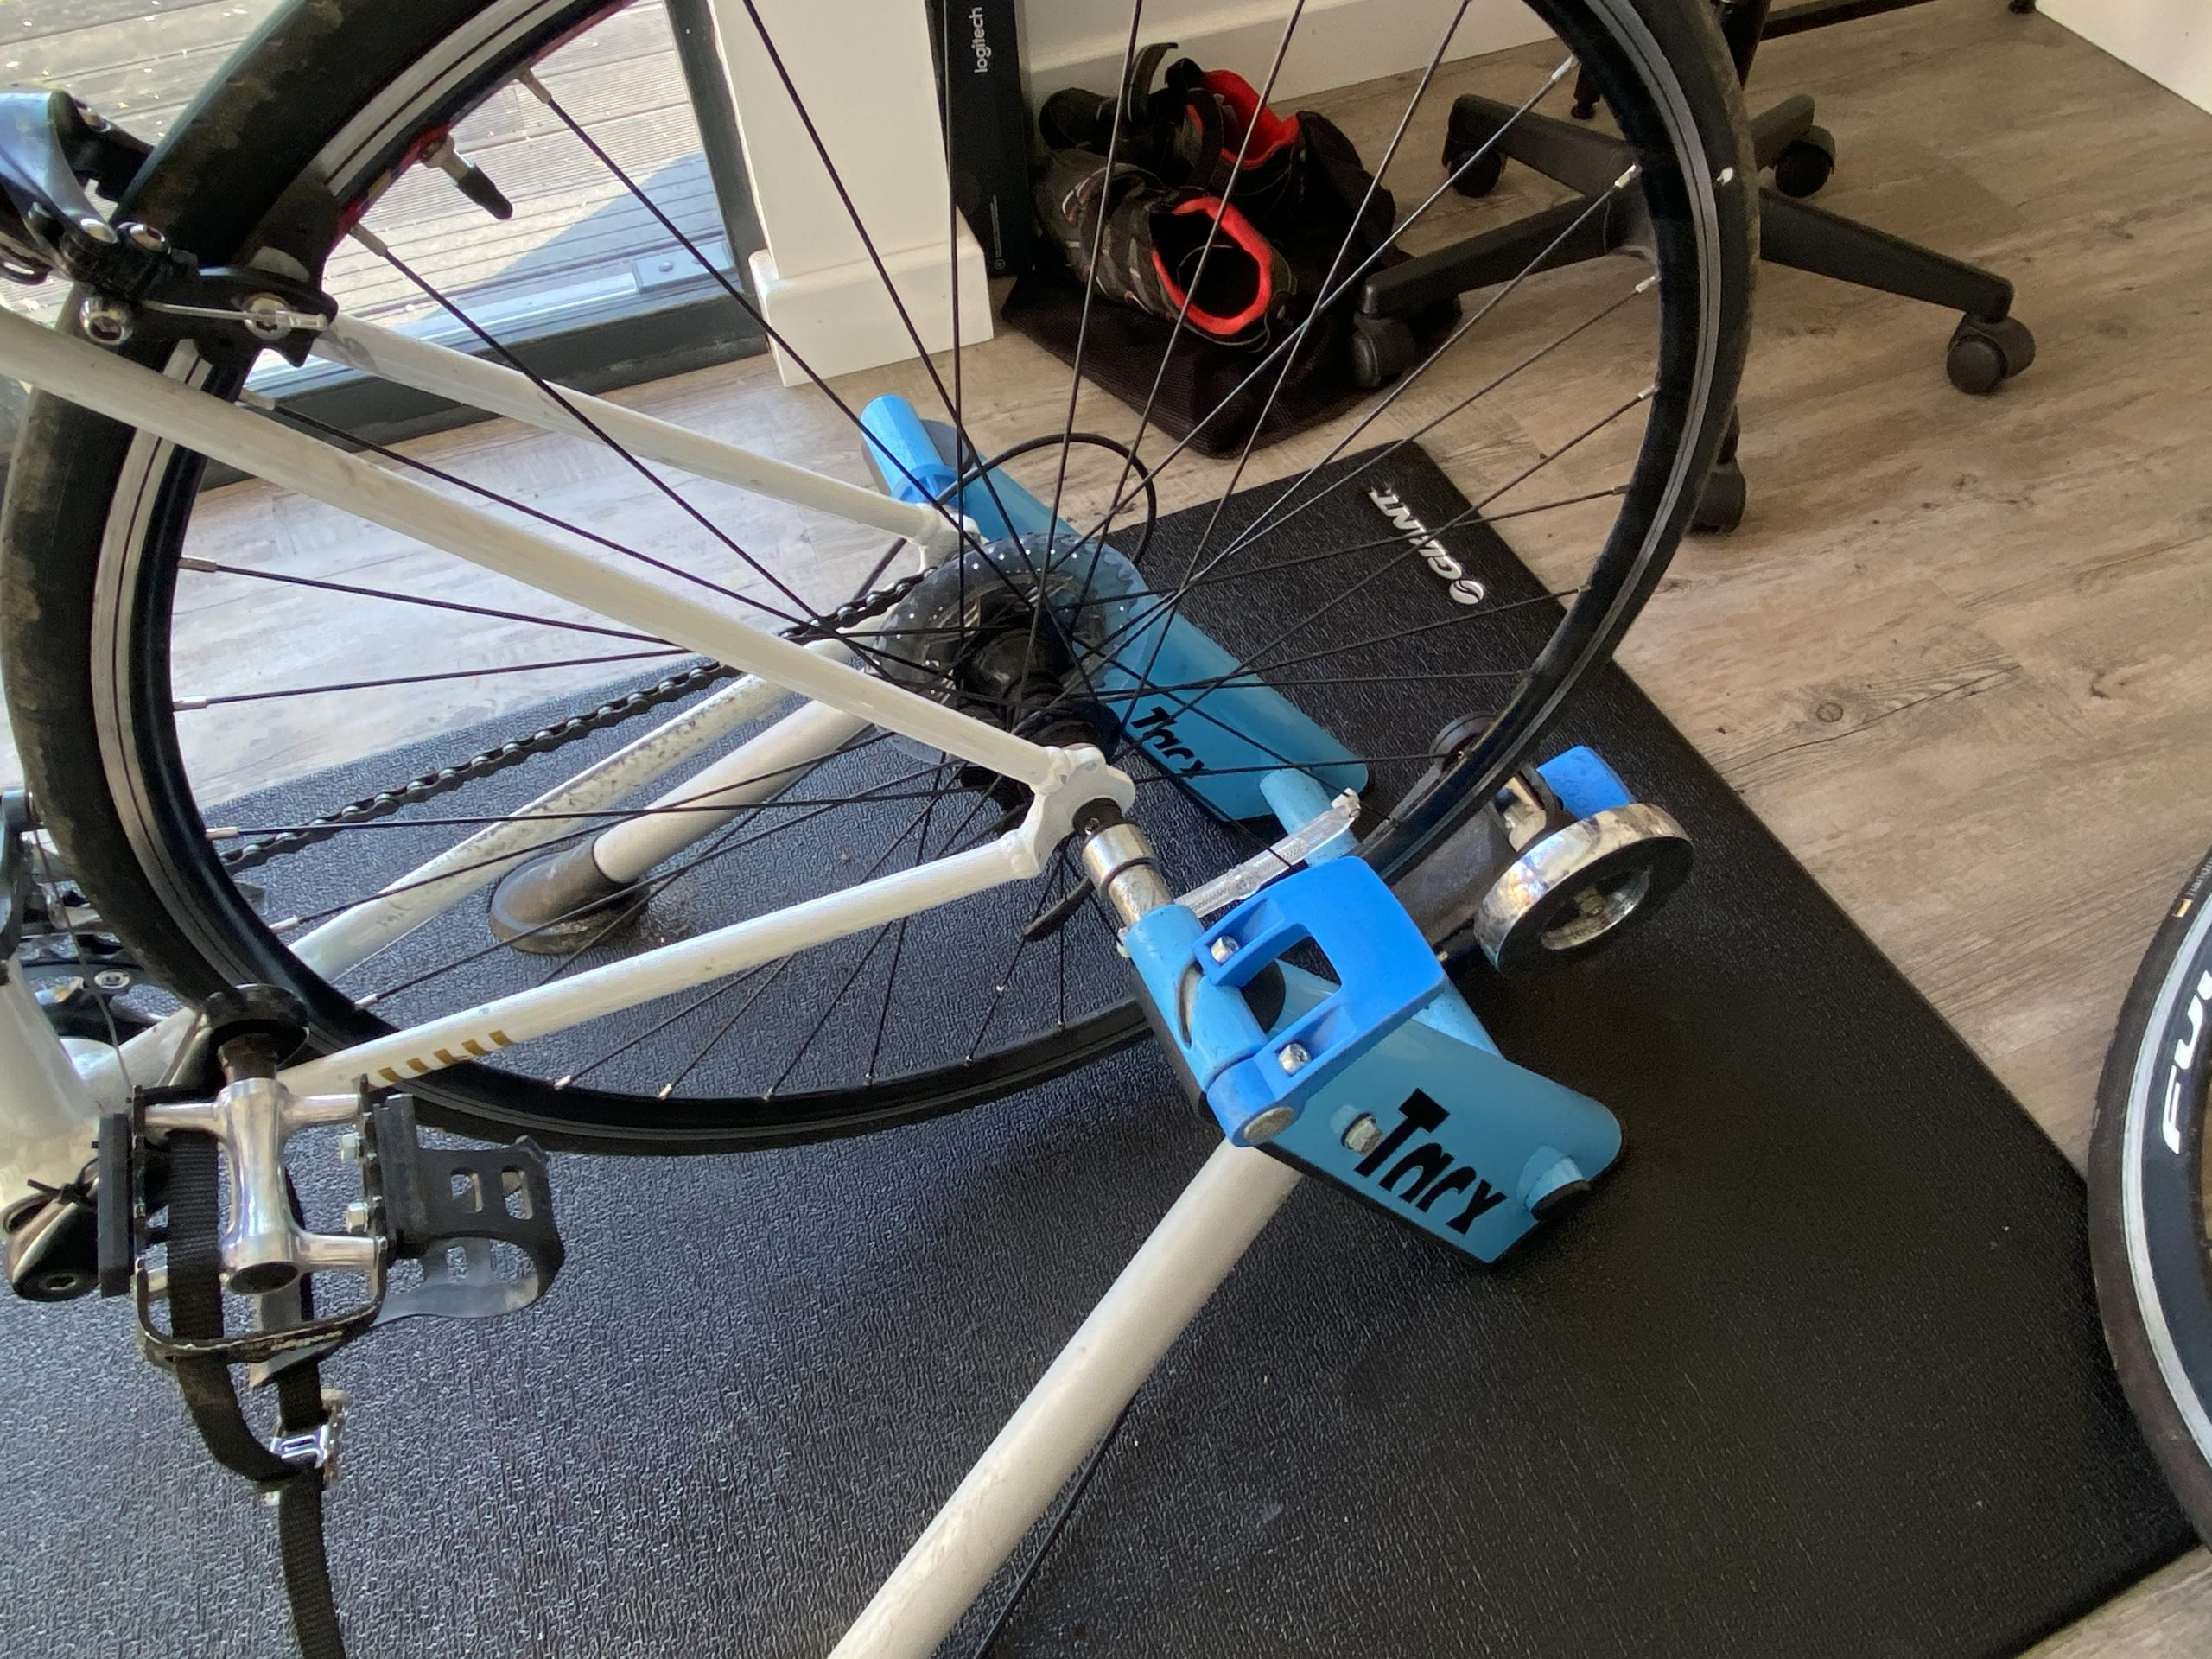 Basic resistance wheel trainer, bike clamped in place